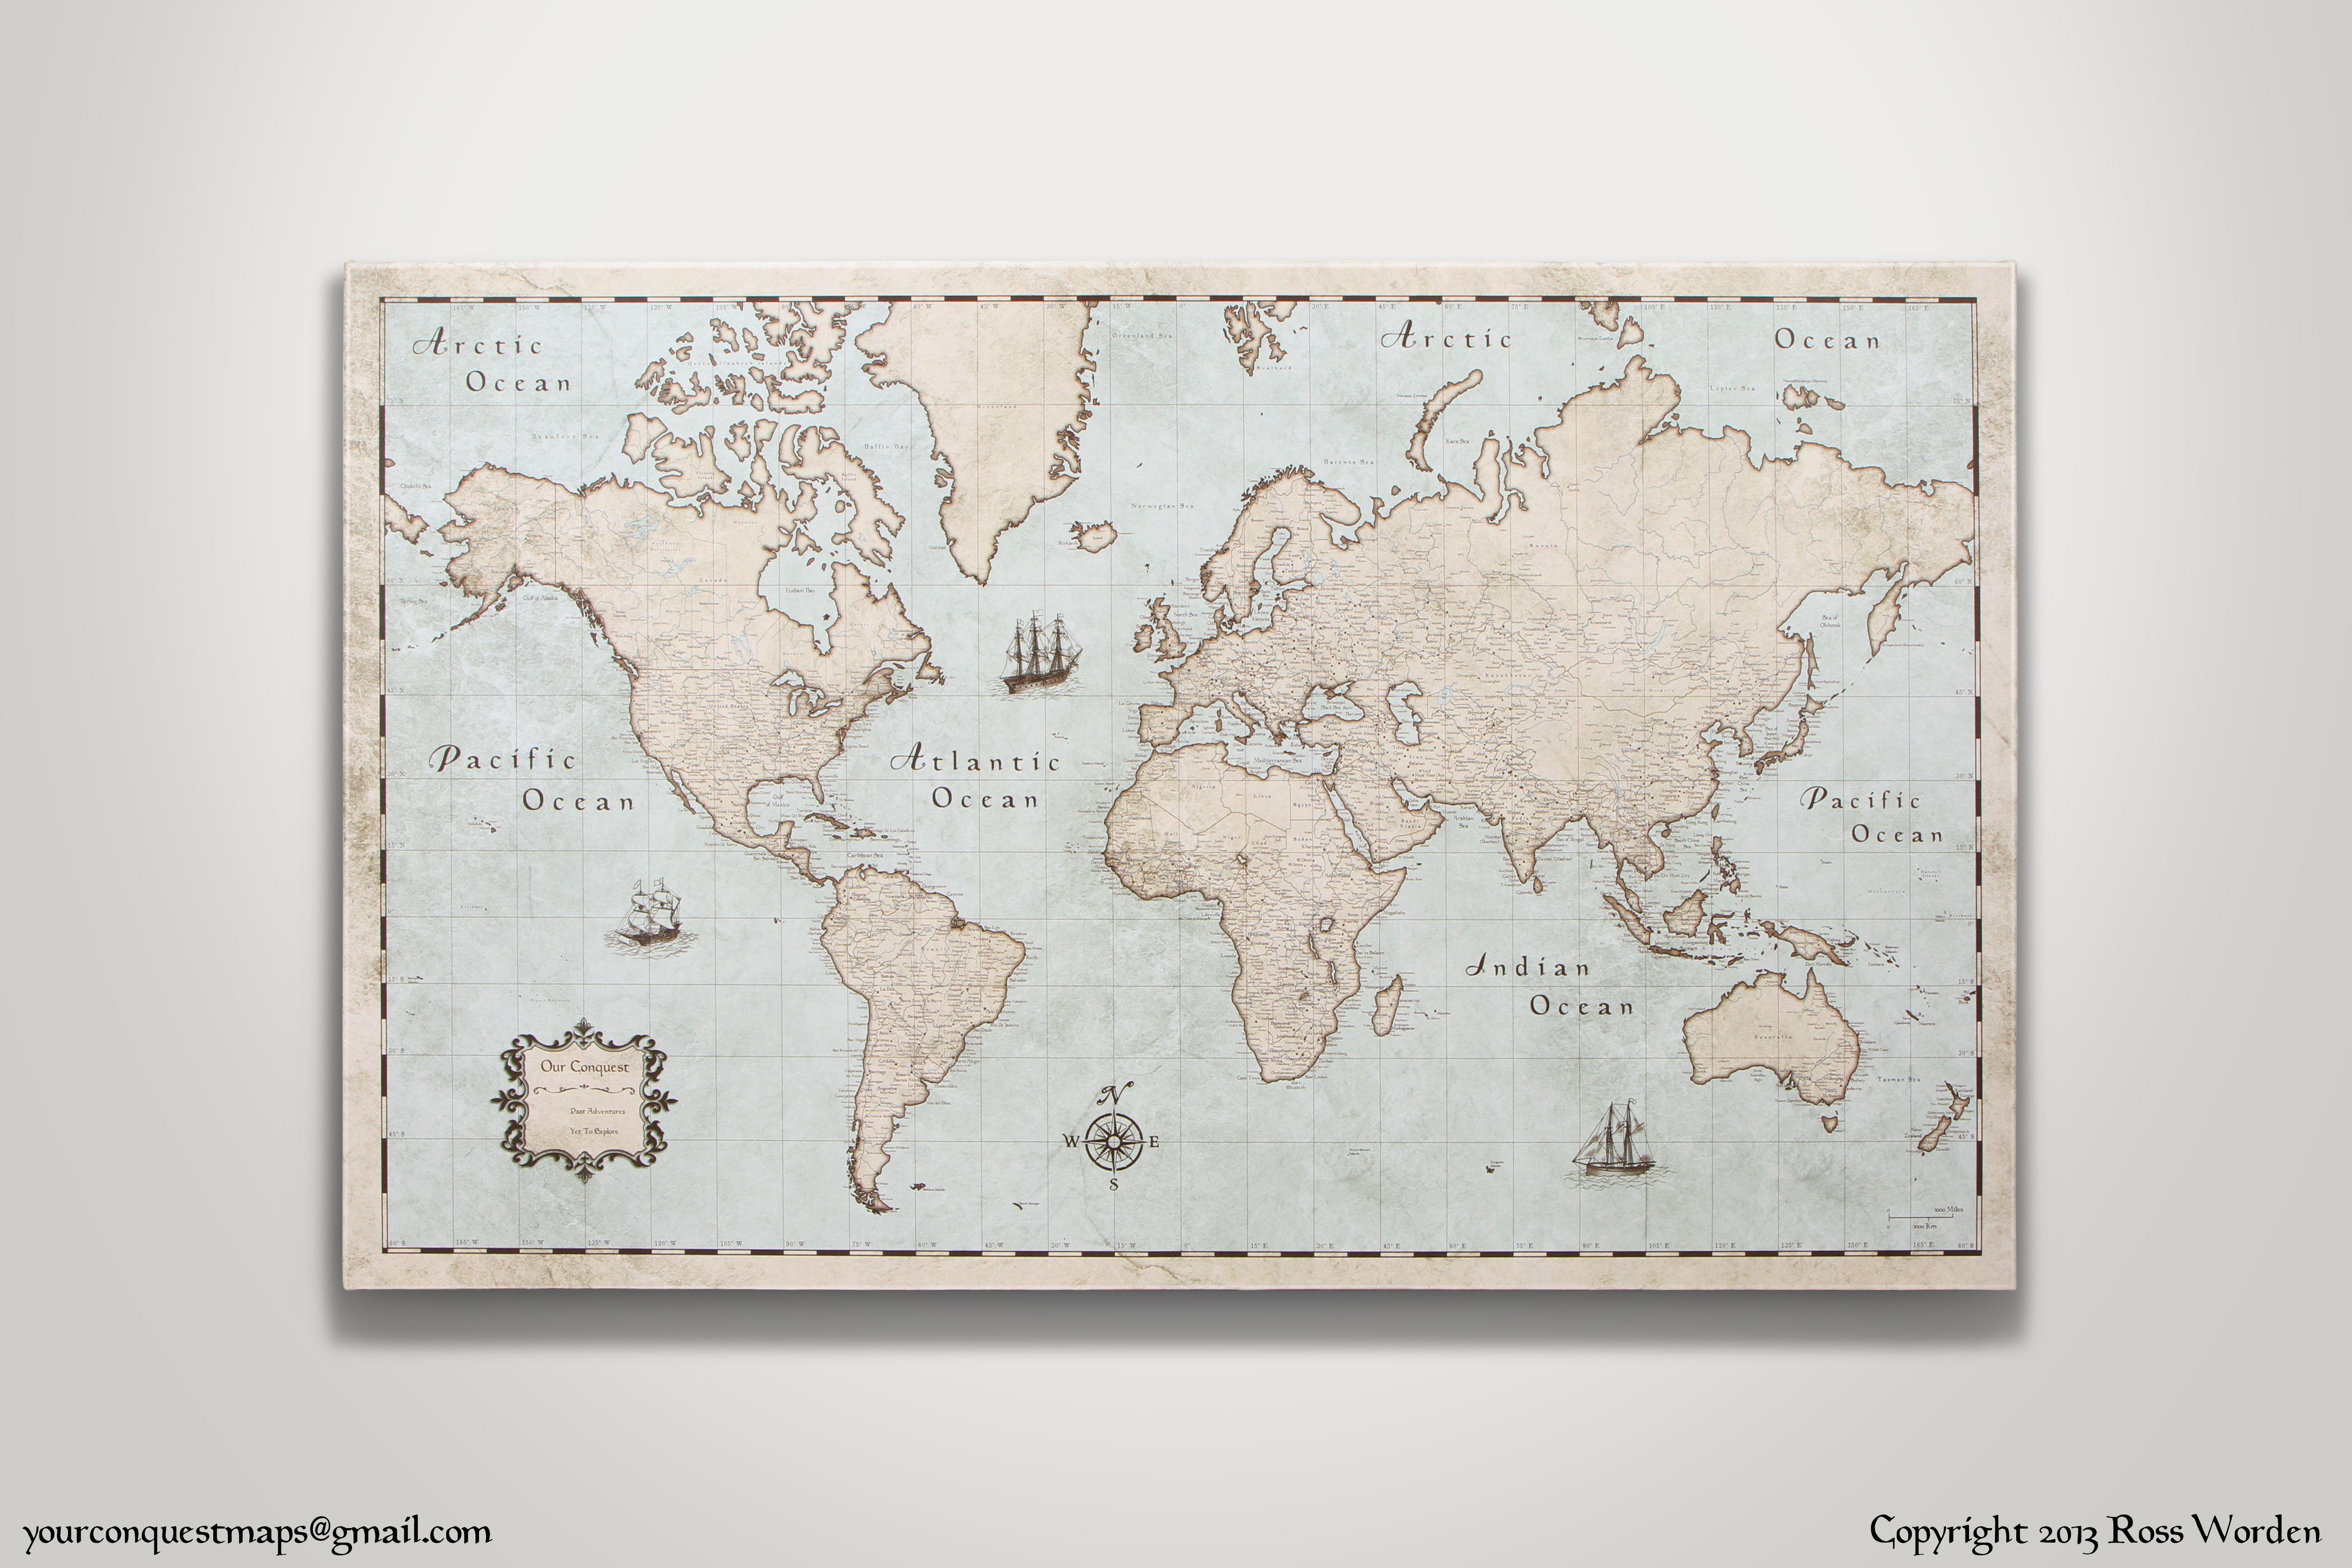 Httpsetsylisting15164032848x30 large vintage cork pin world travel map x large rustic vintage style cork pin board canvas print gumiabroncs Image collections